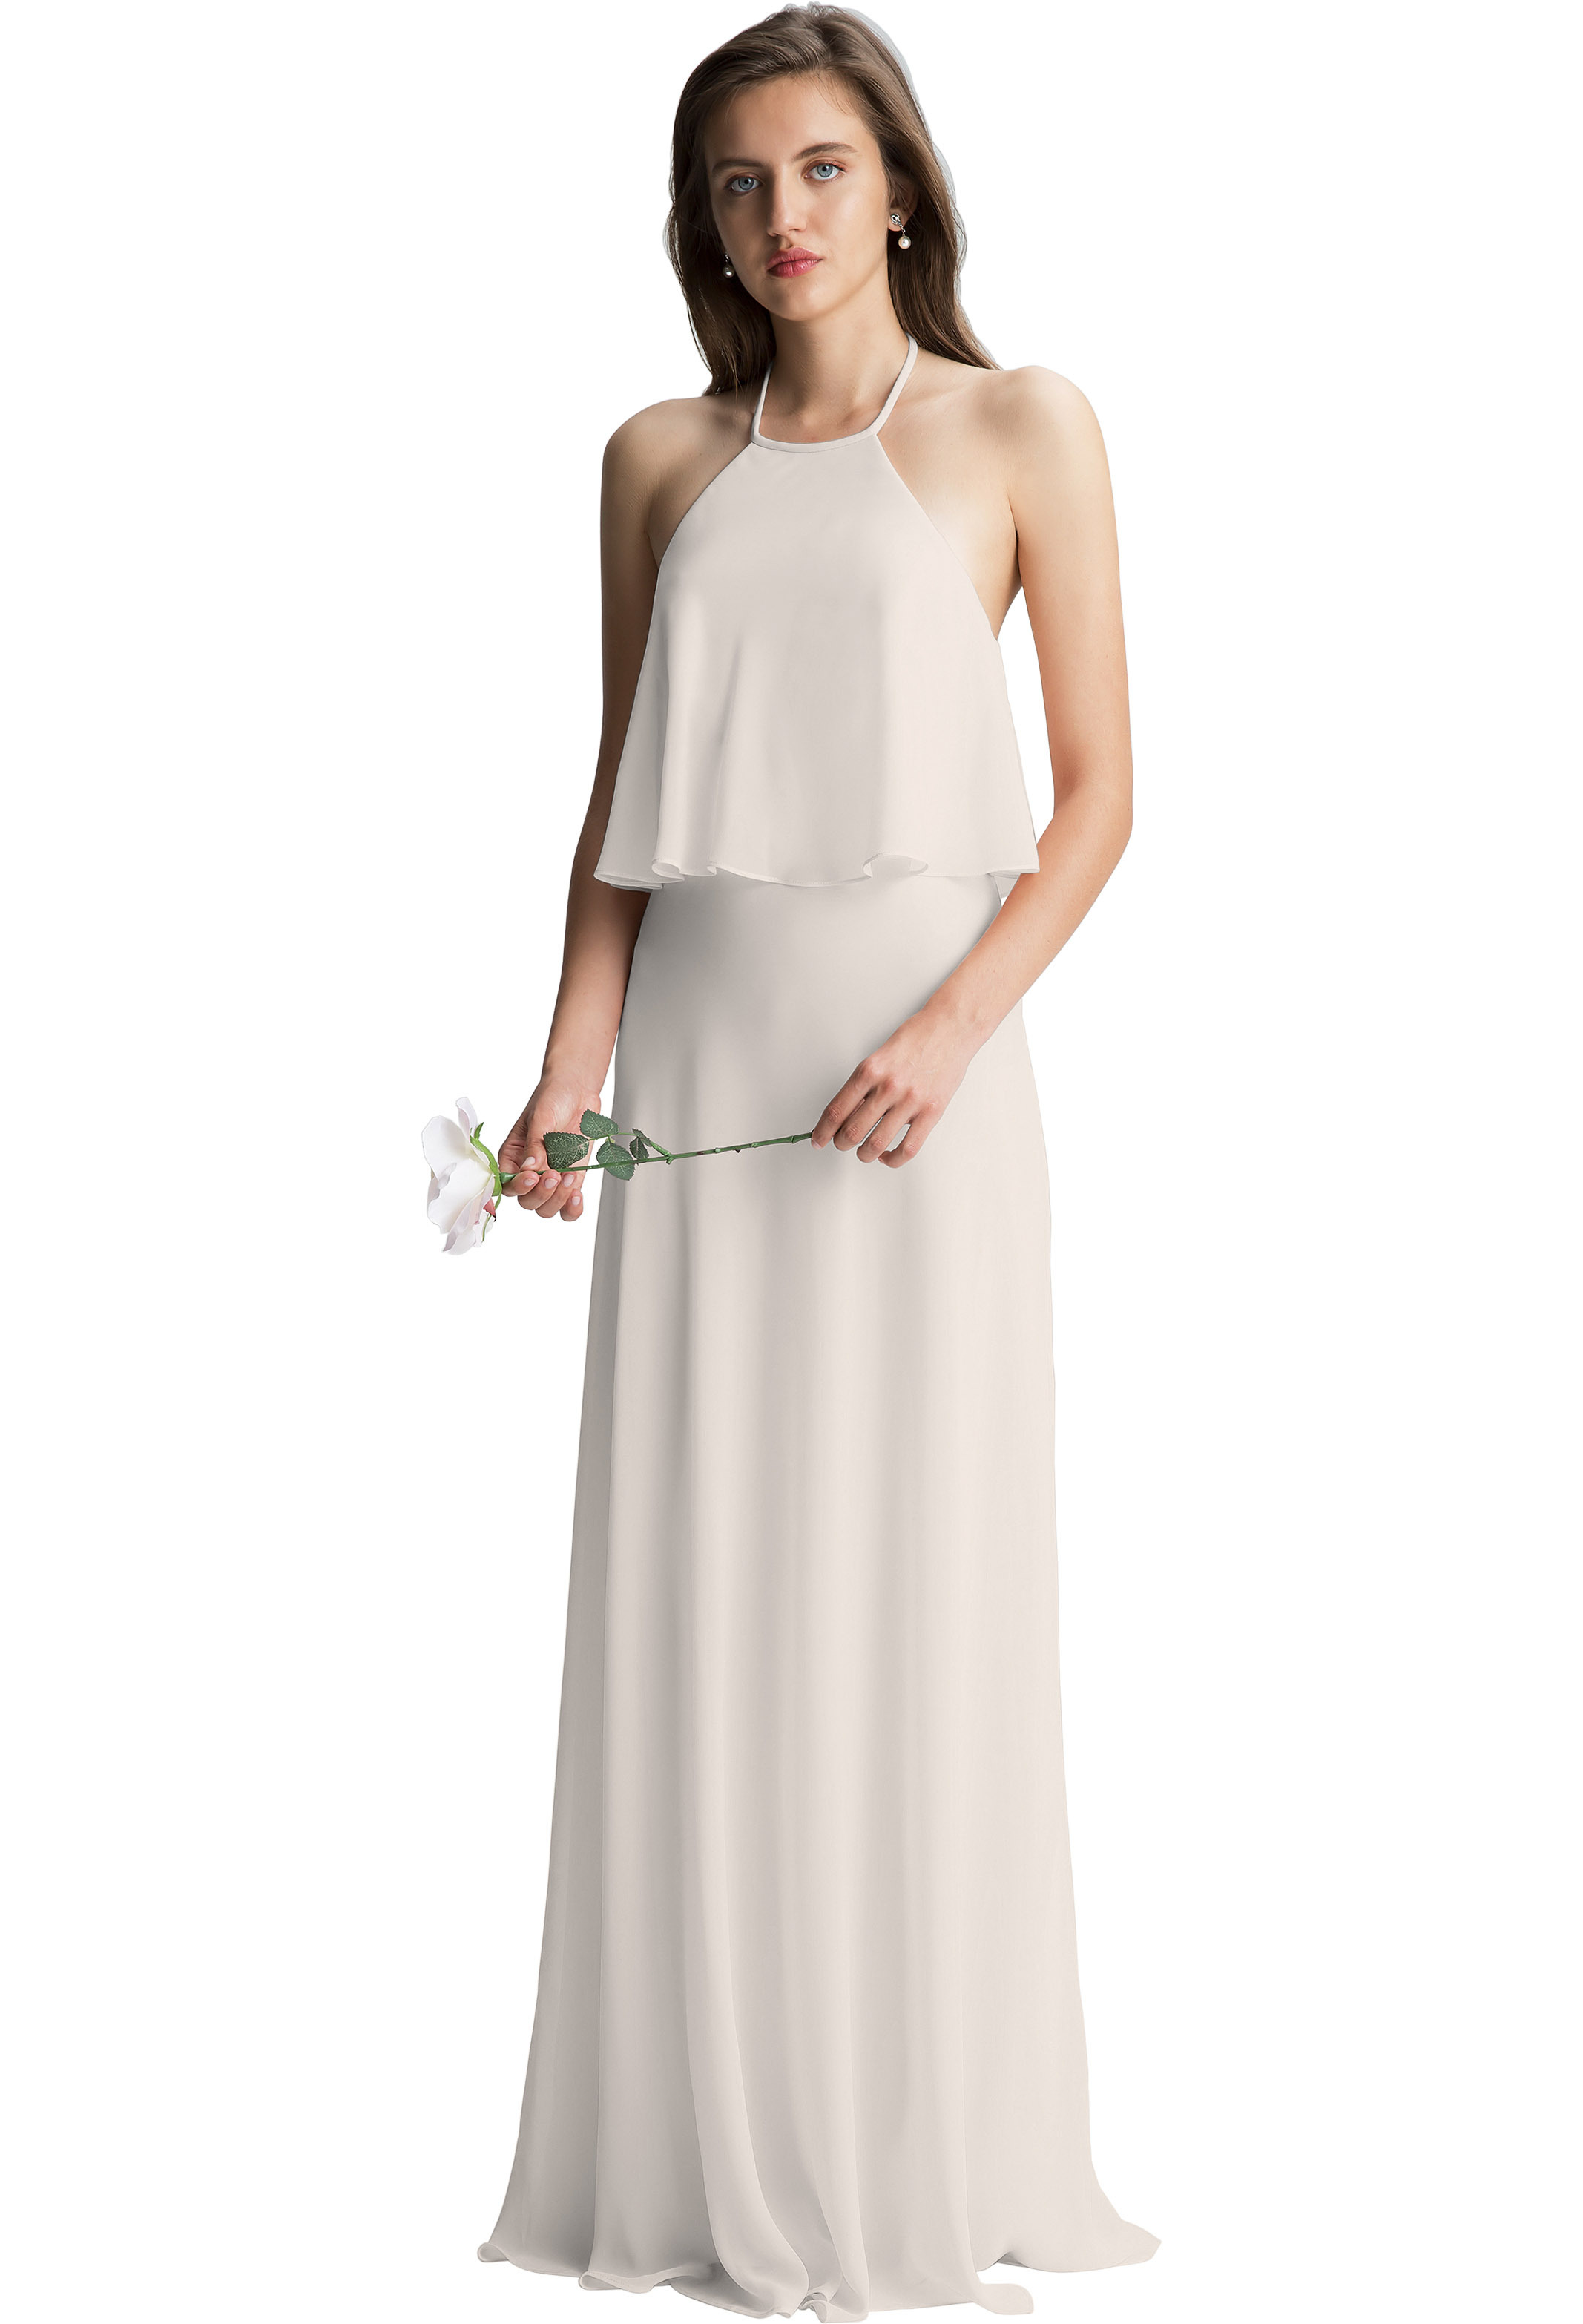 Bill Levkoff IVORY Chiffon Halter A-line gown, $150.00 Front